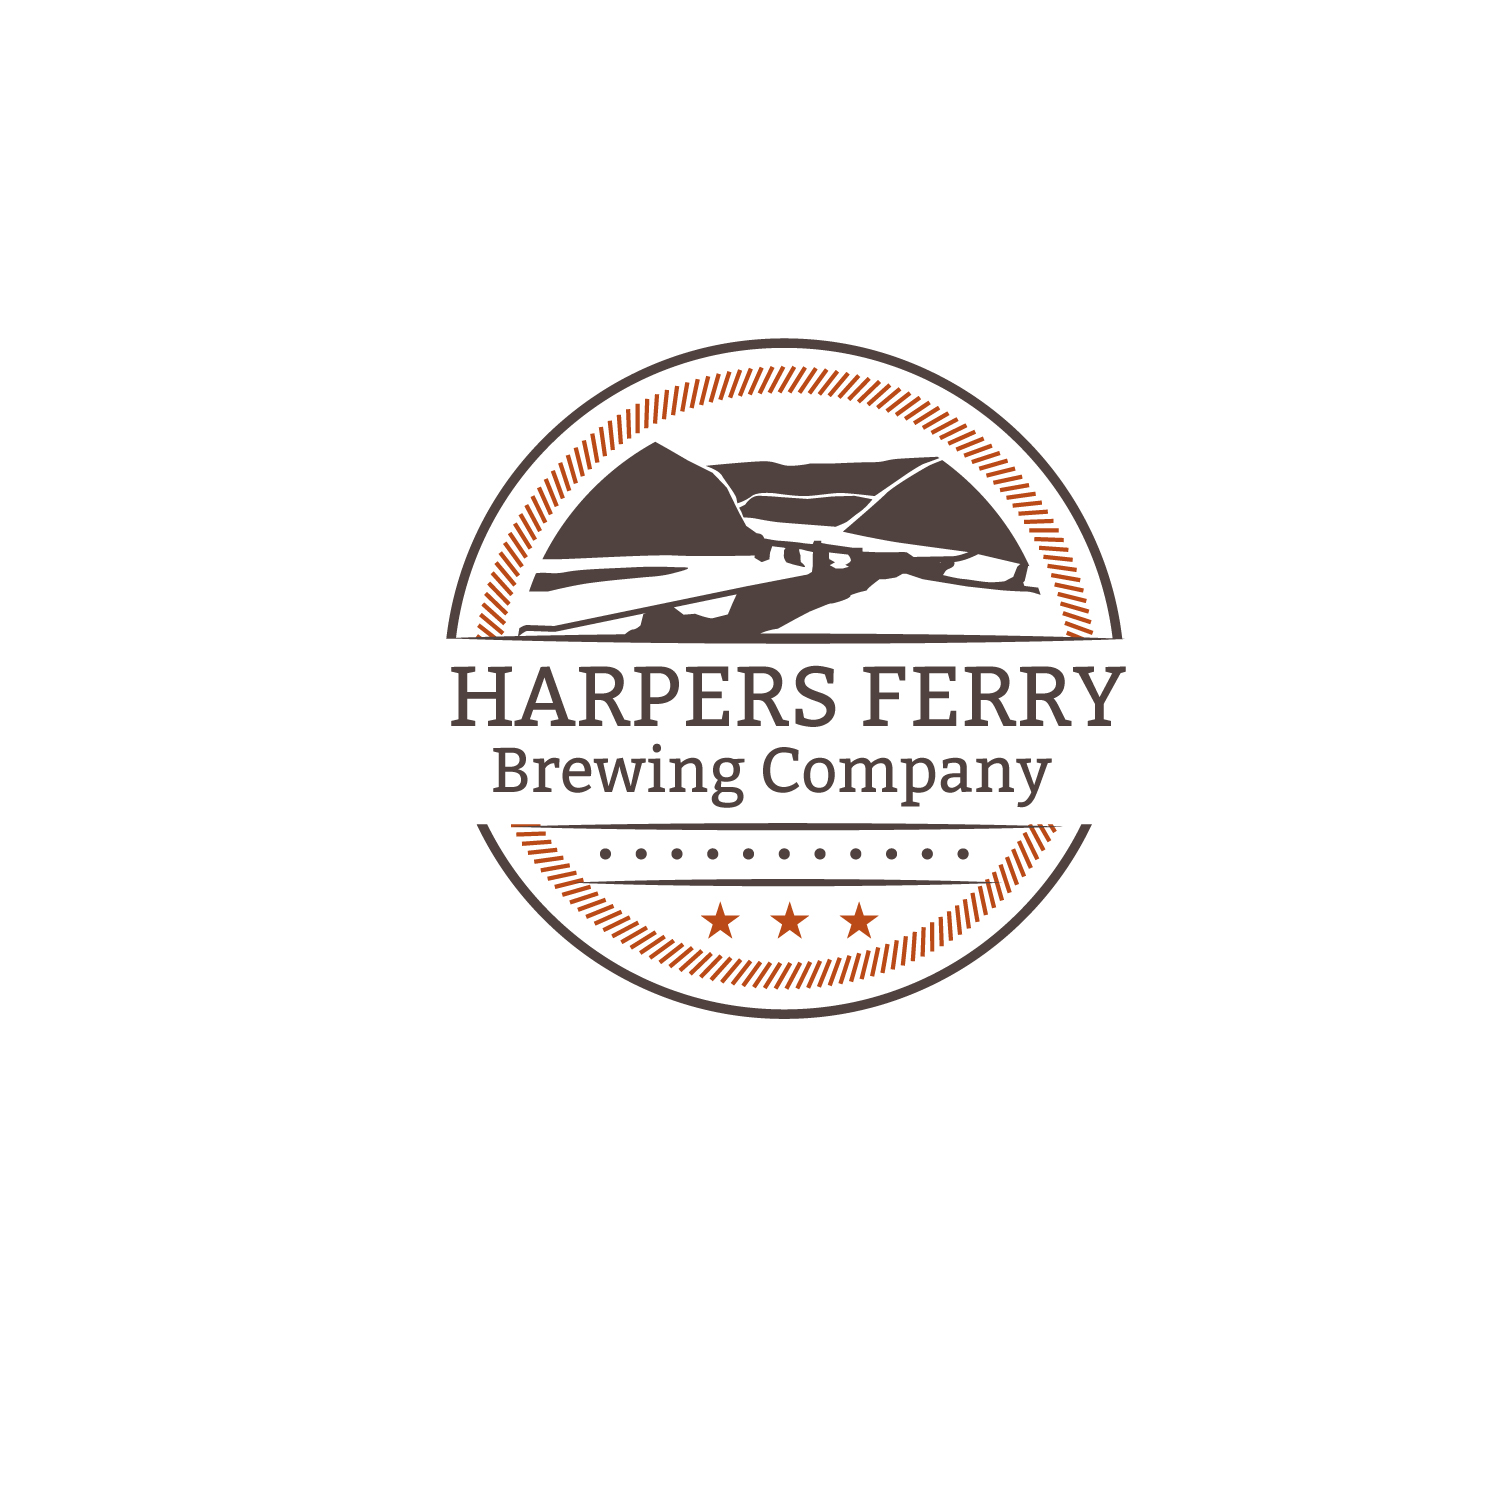 Logo Design by Bac Huu - Entry No. 17 in the Logo Design Contest Unique Logo Design Wanted for Harpers ferry brewing company.